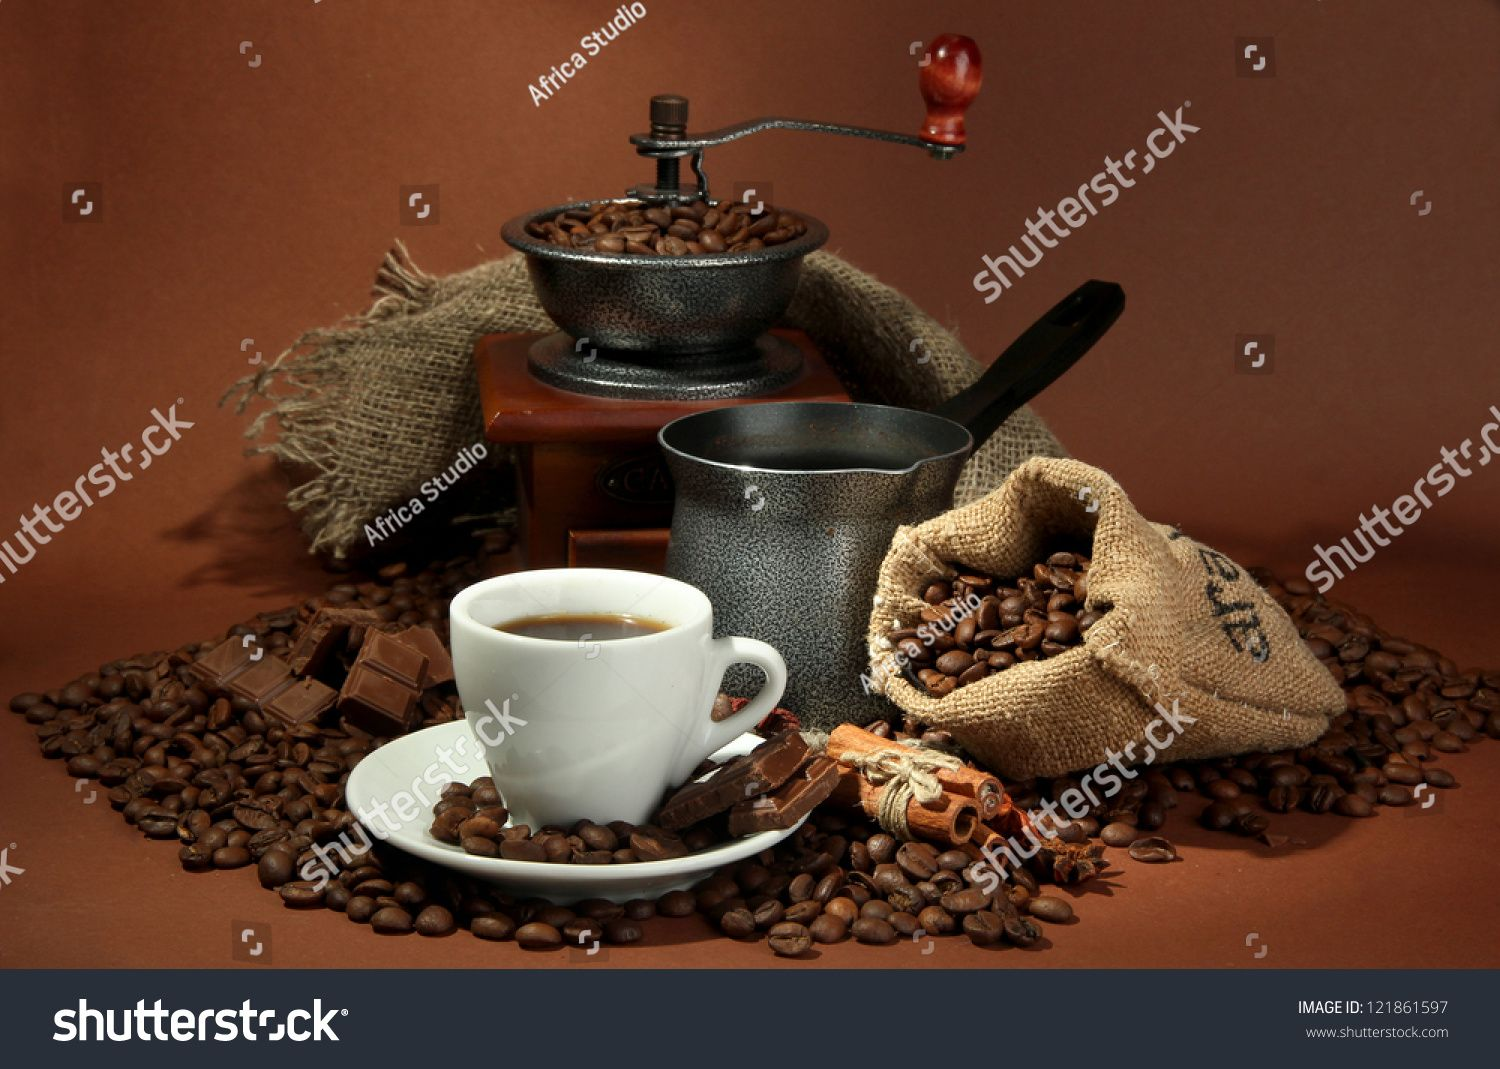 Cup Of Coffee Grinder Turk And Coffee Beans On Brown Background Ad Sponsored Grinder Coffee Cup Turk Coffee Beans Cup Coffee Cups Hd wallpaper coffee grinder coffee beans